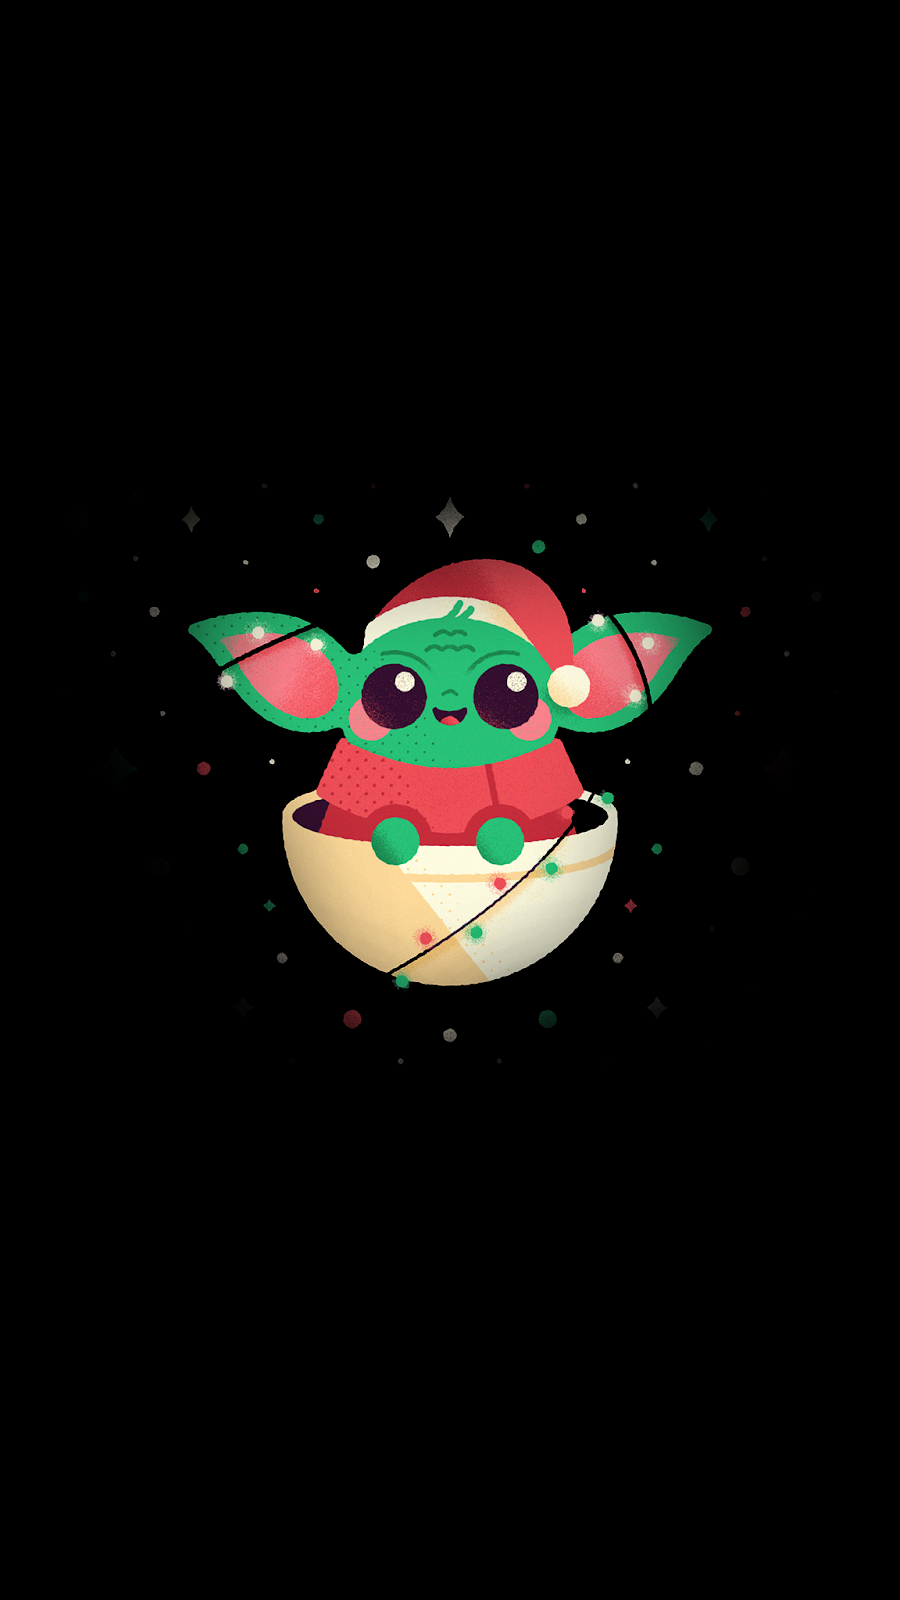 Baby Yoda Wallpapers For Phone Heroscreen In 2020 Yoda Wallpaper Star Wars Wallpaper Star Wars Christmas